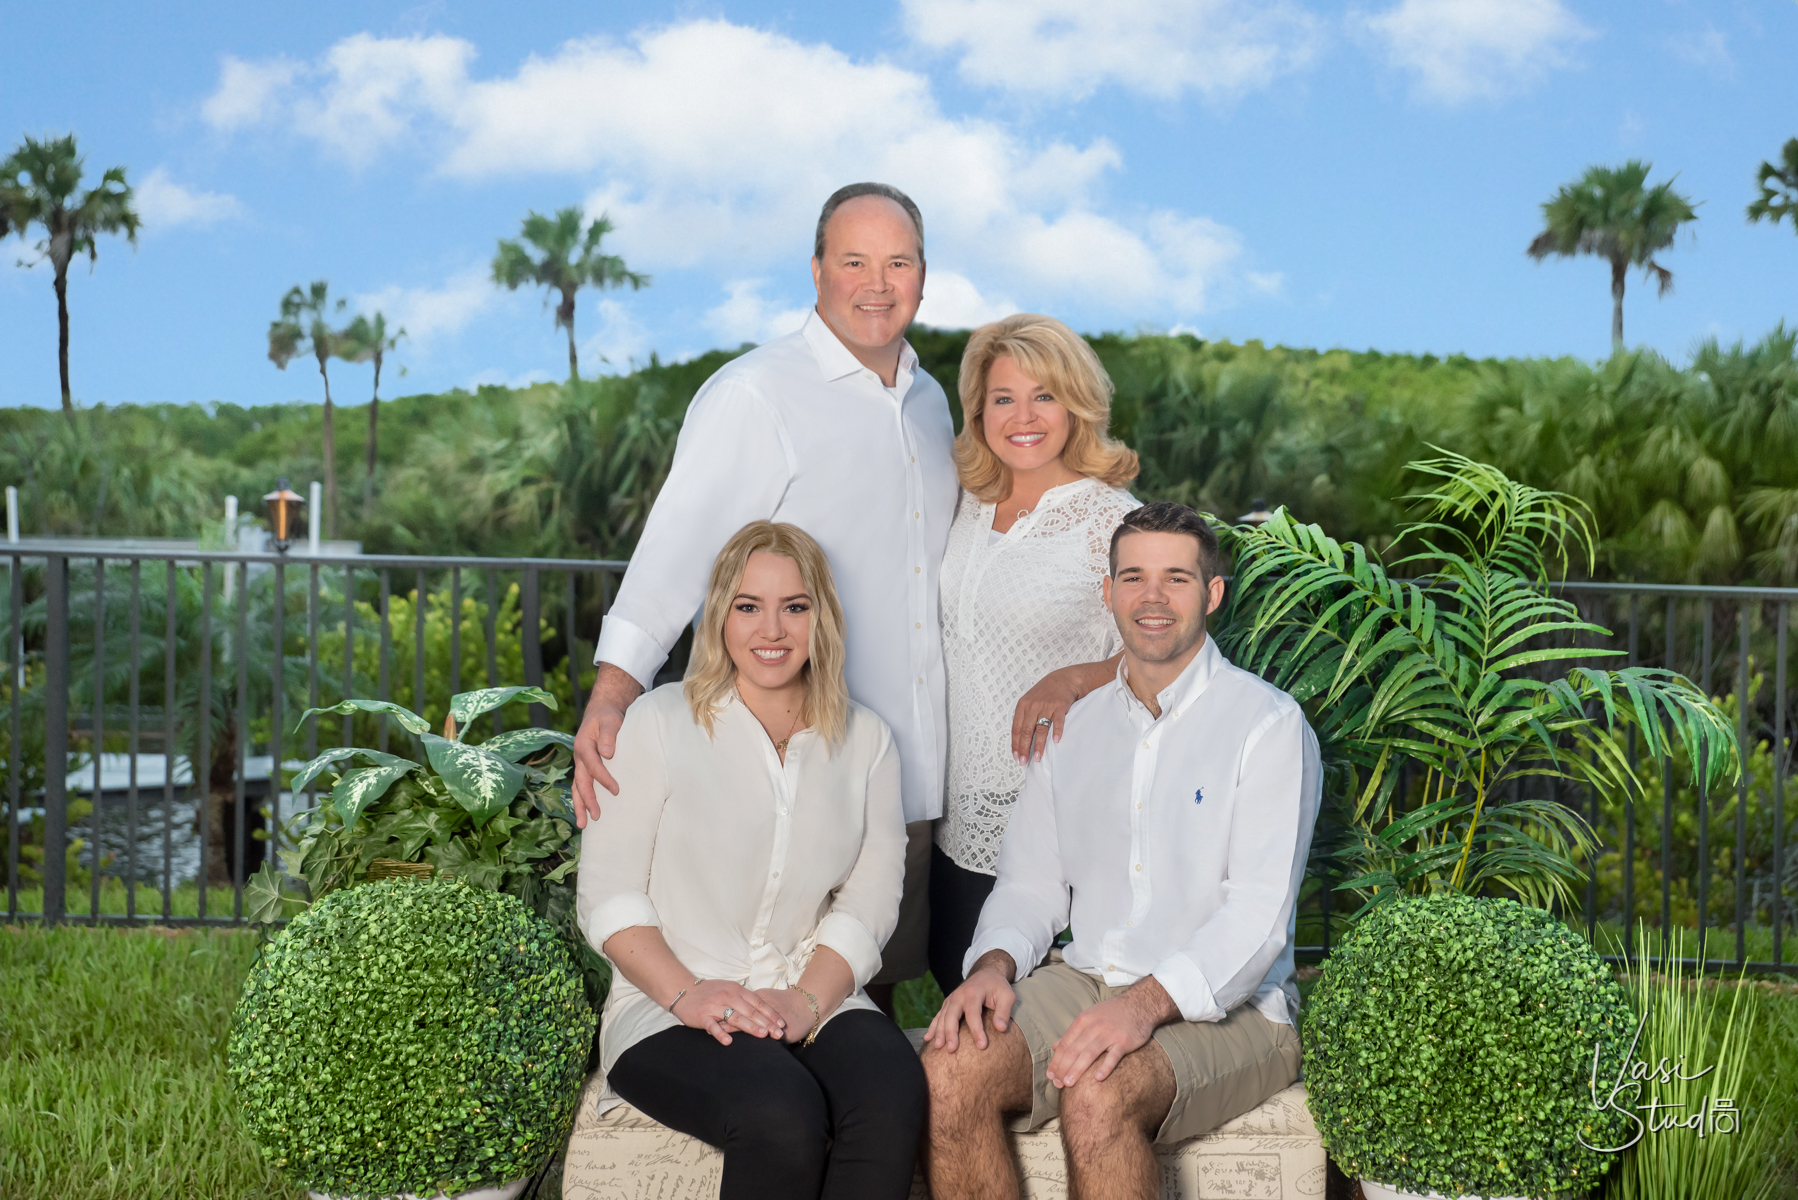 South Florida family photographer. Call us today at (561) 307-9875.